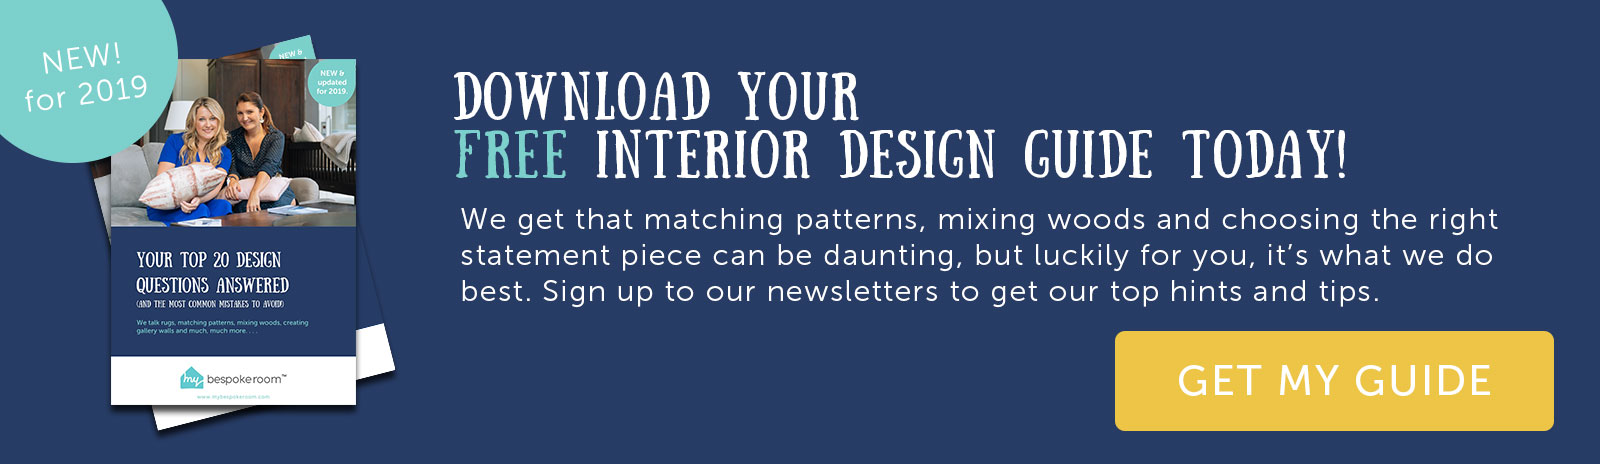 Download your free interior design guide today